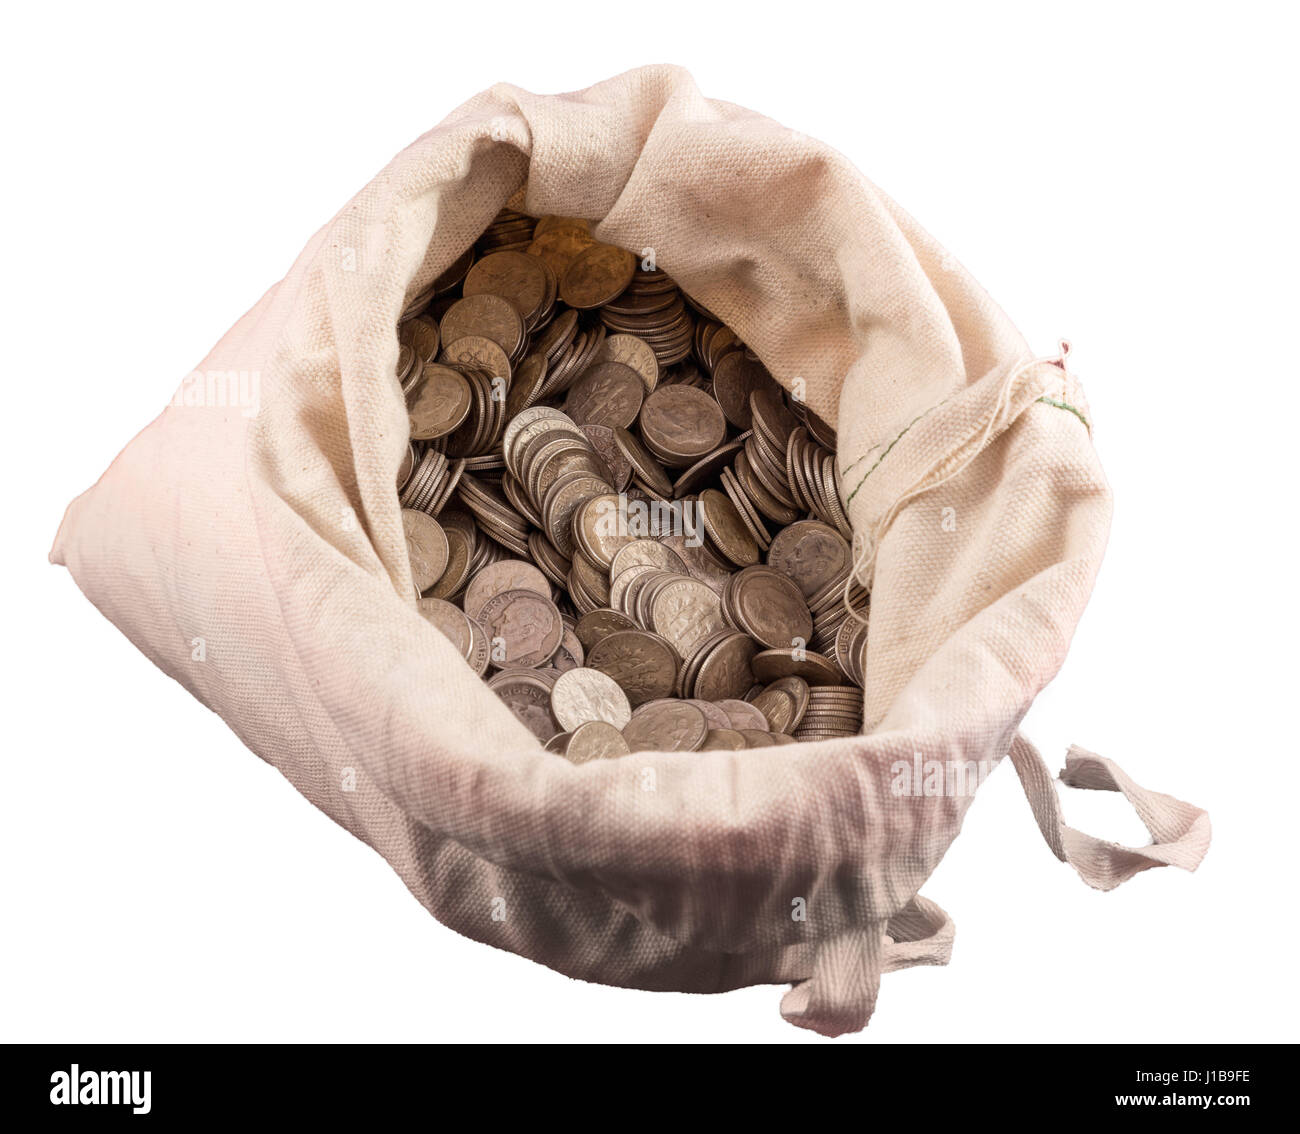 A sack of money with thousands of US dimes and coins in a cloth money bag with a white background. - Stock Image